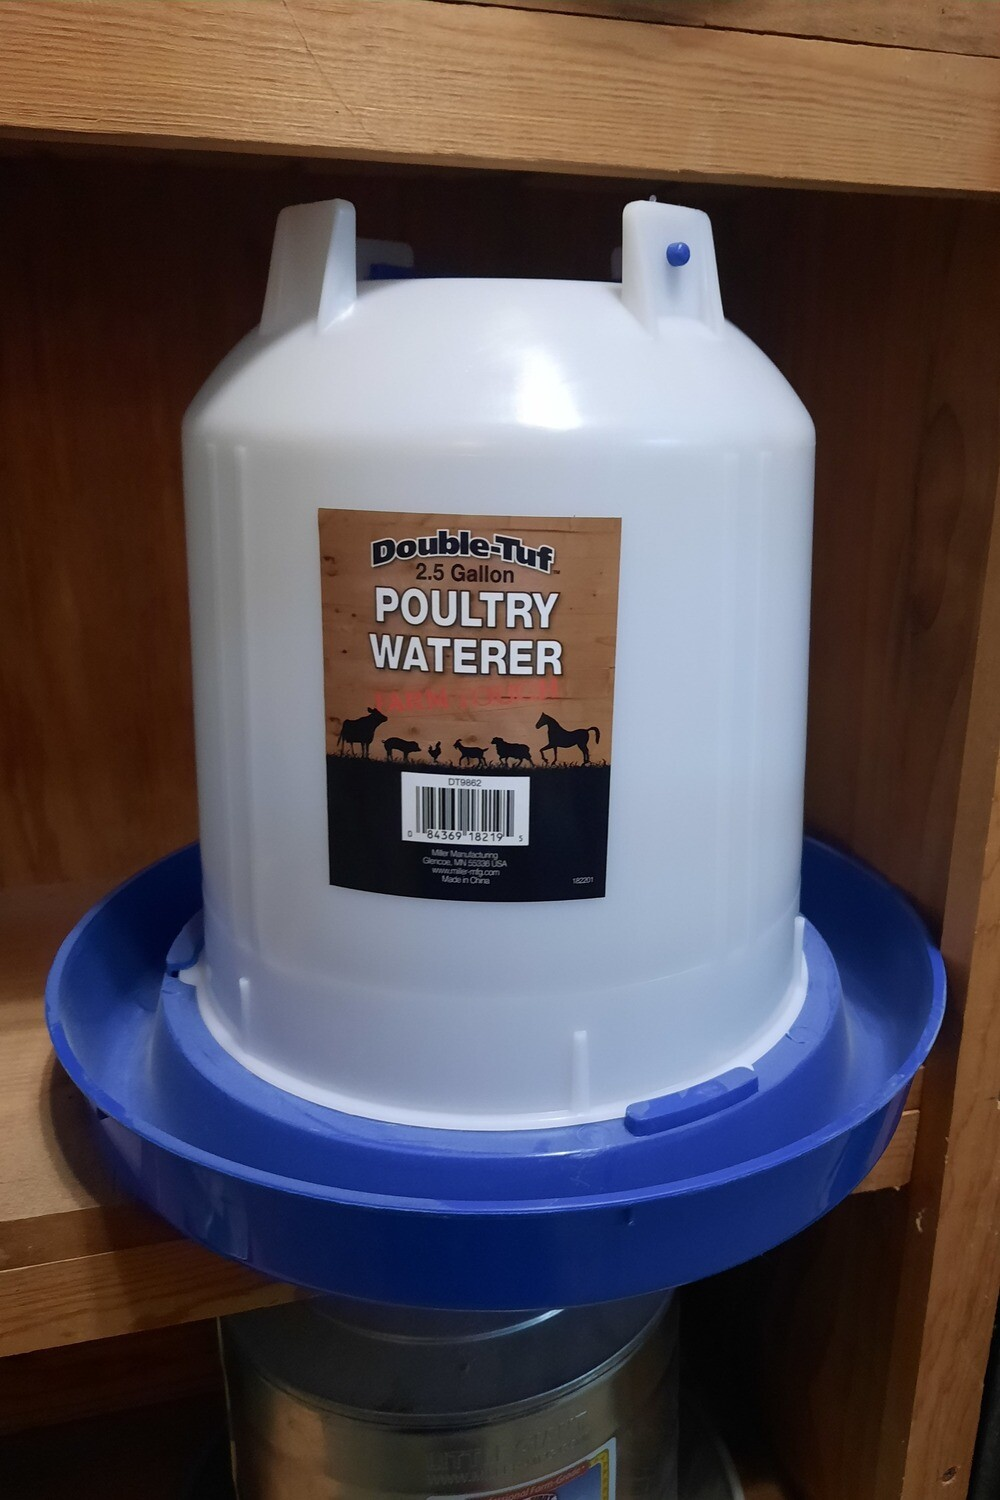 2.5 Gallon Hanging Plastic Poultry Waterer